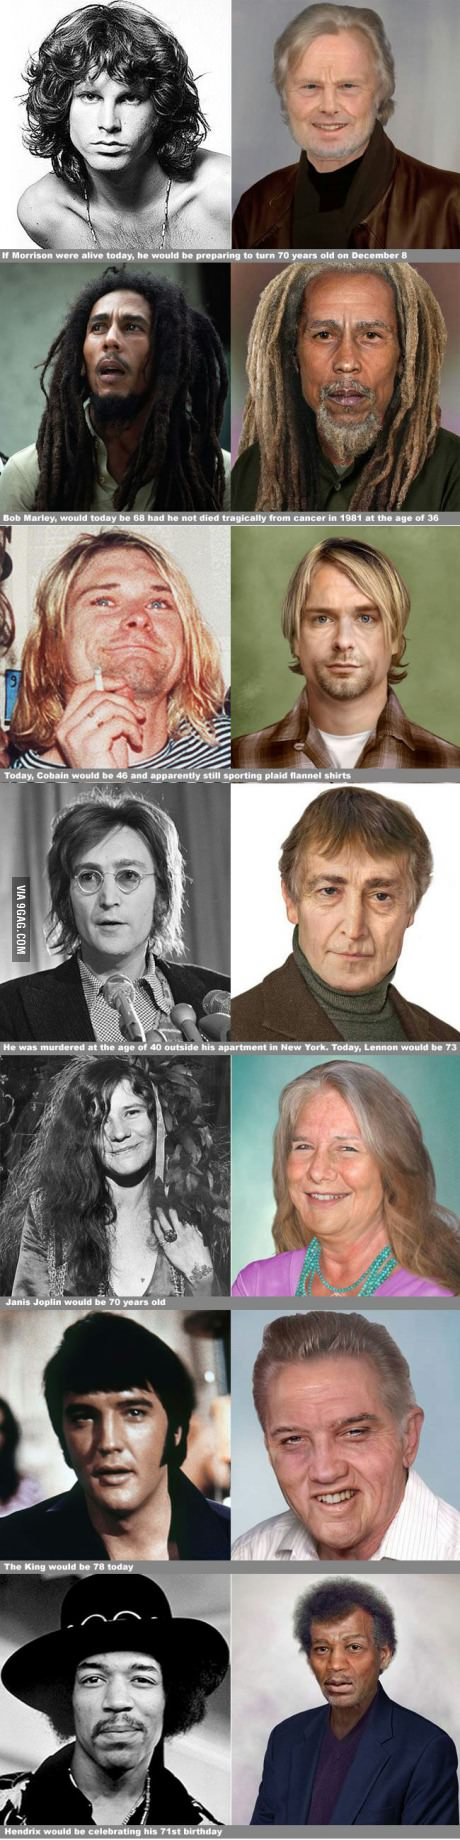 Rock legends - If they were still alive